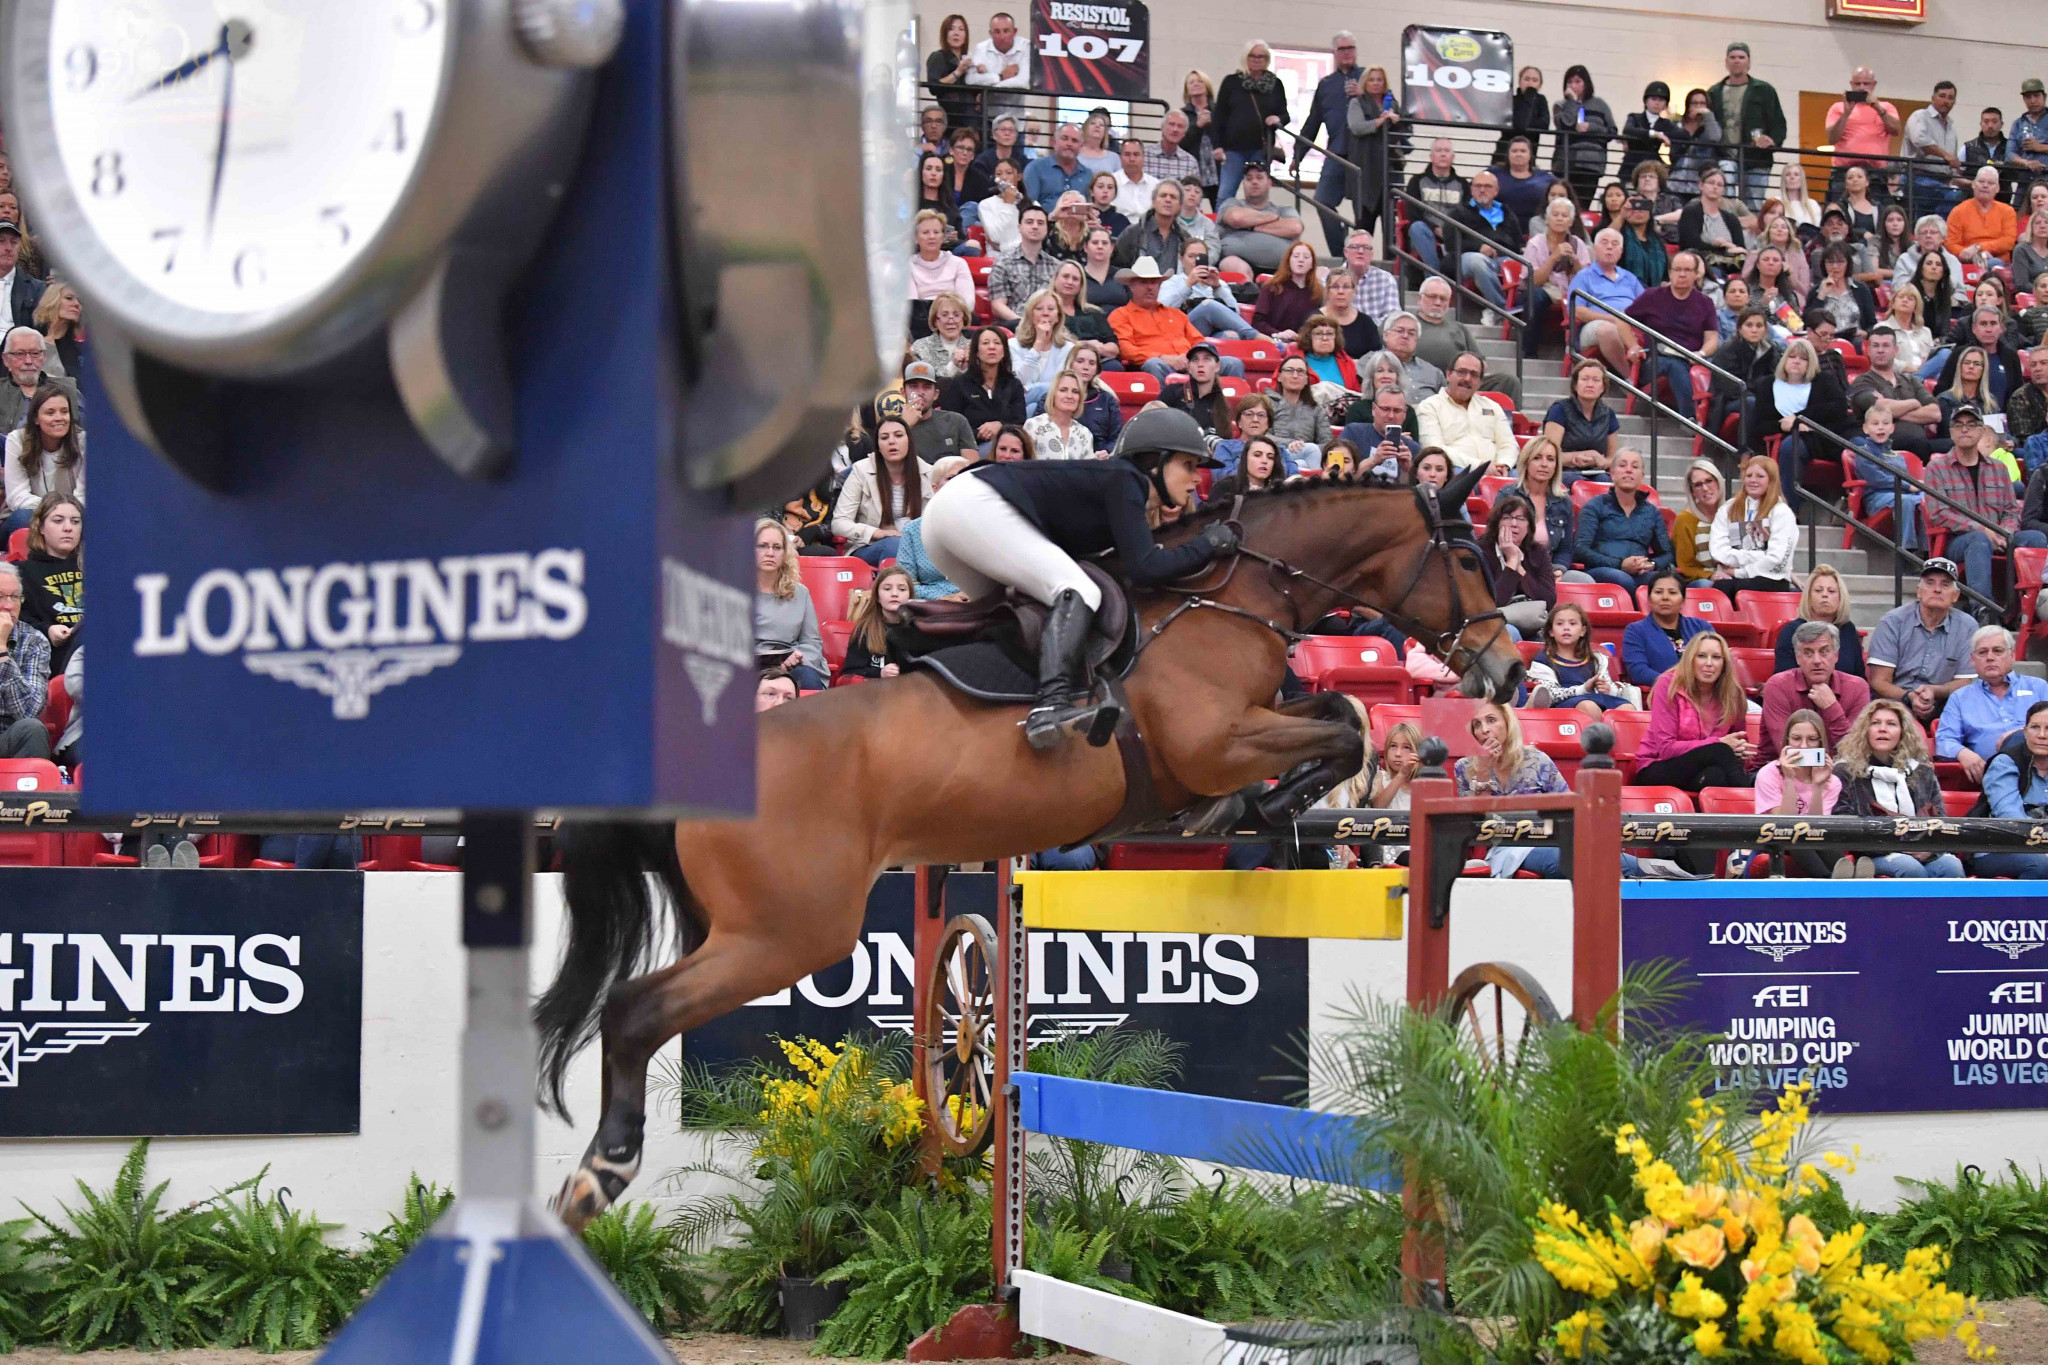 Sternlicht records second straight FEI Jumping World Cup win with Las Vegas victory